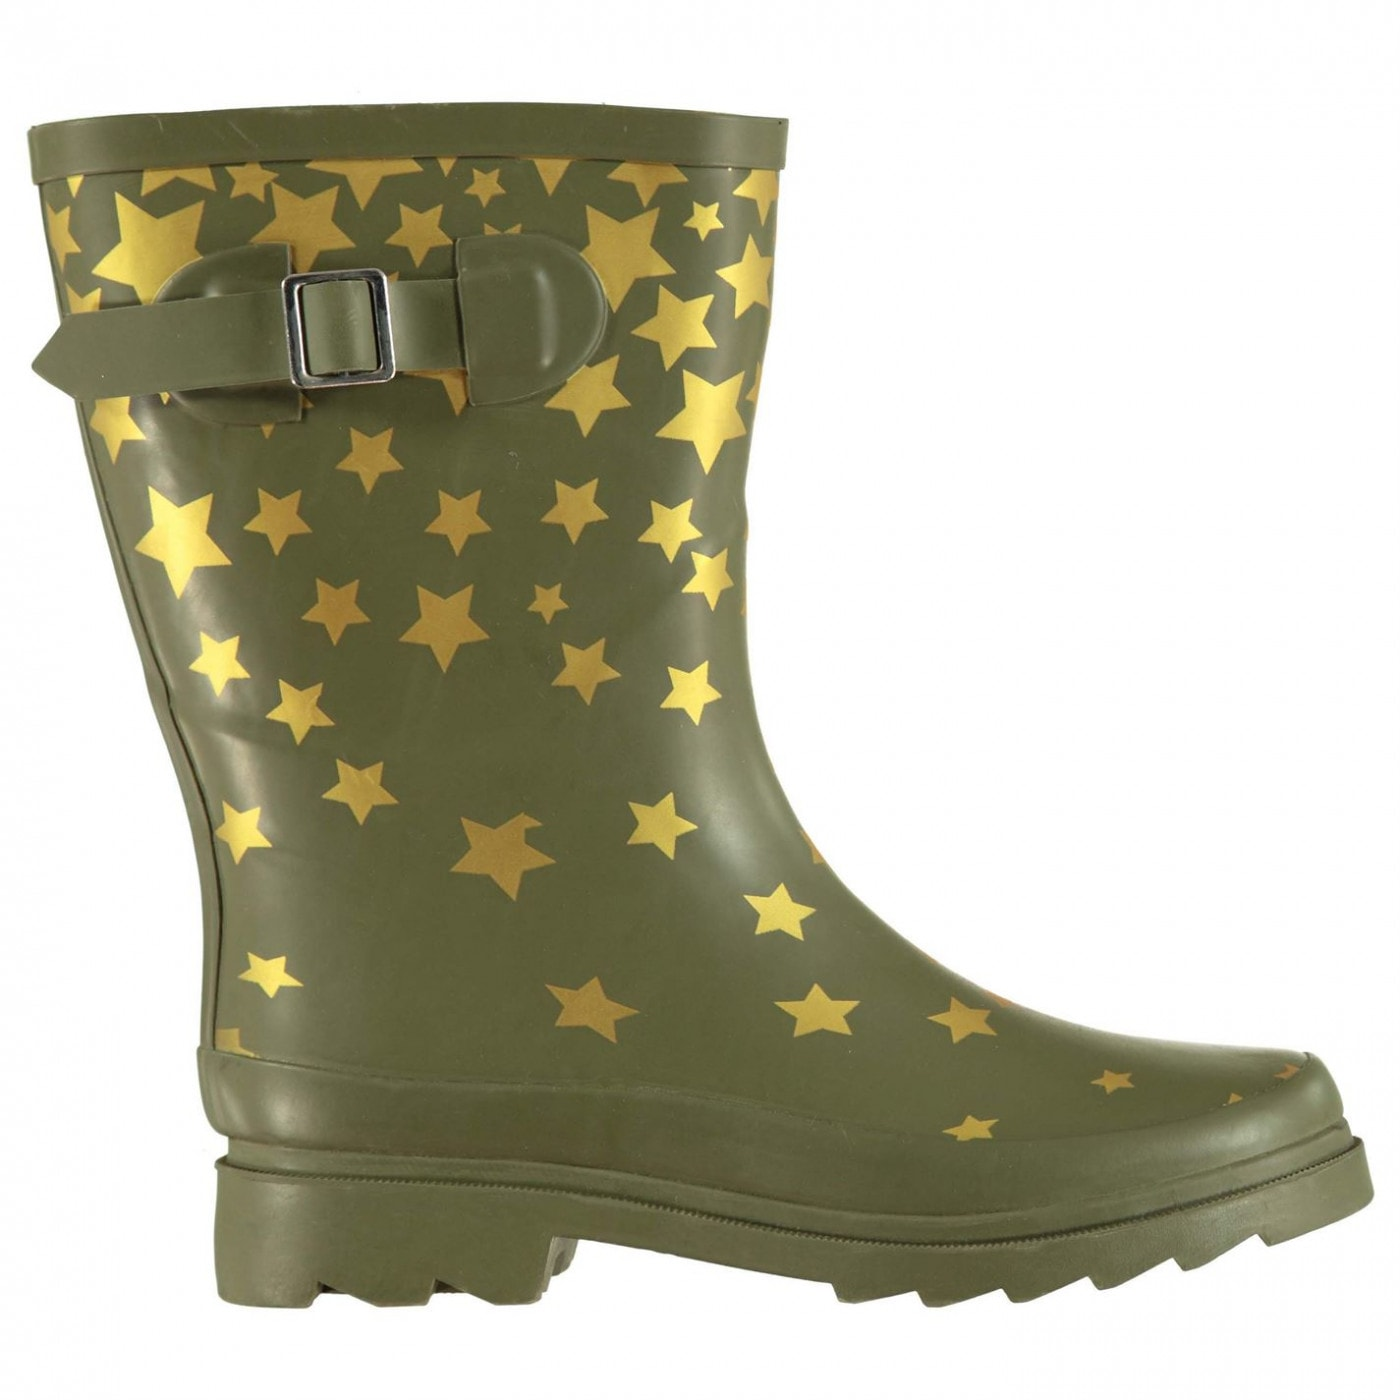 Rock and Rags Star Ladies Wellington Boots